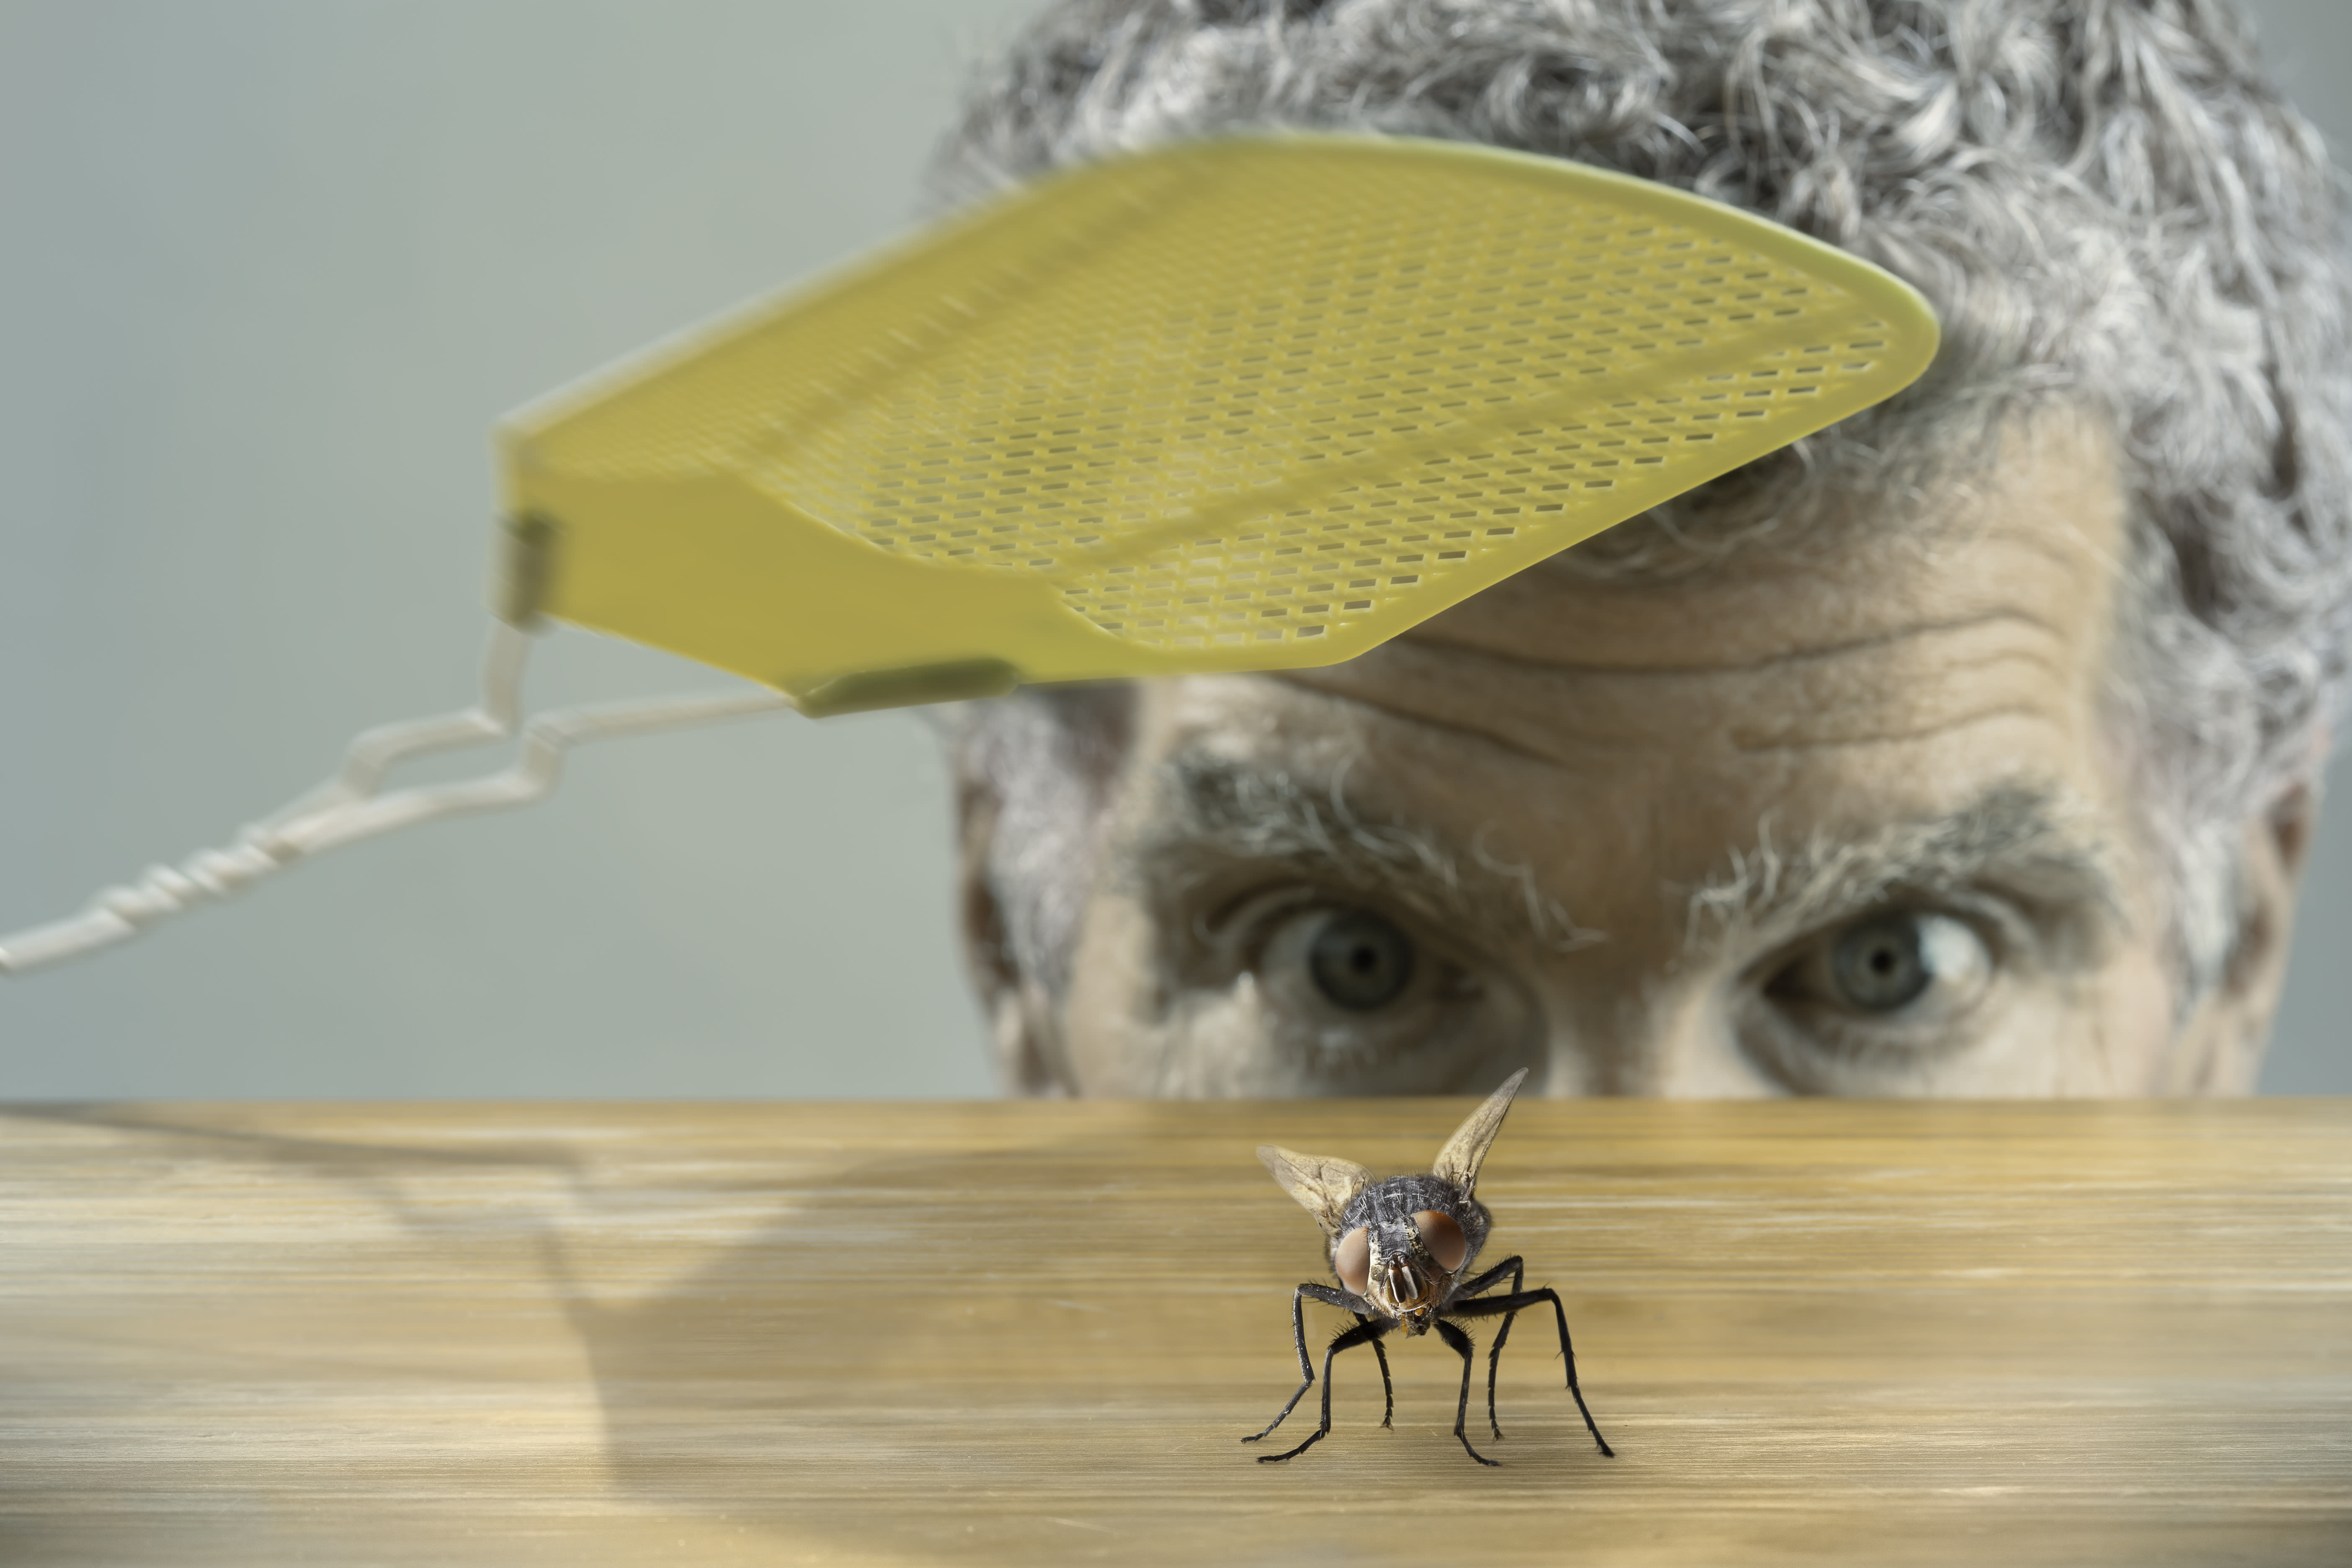 How to get rid of flies in the house: Best ways to banish pests quickly